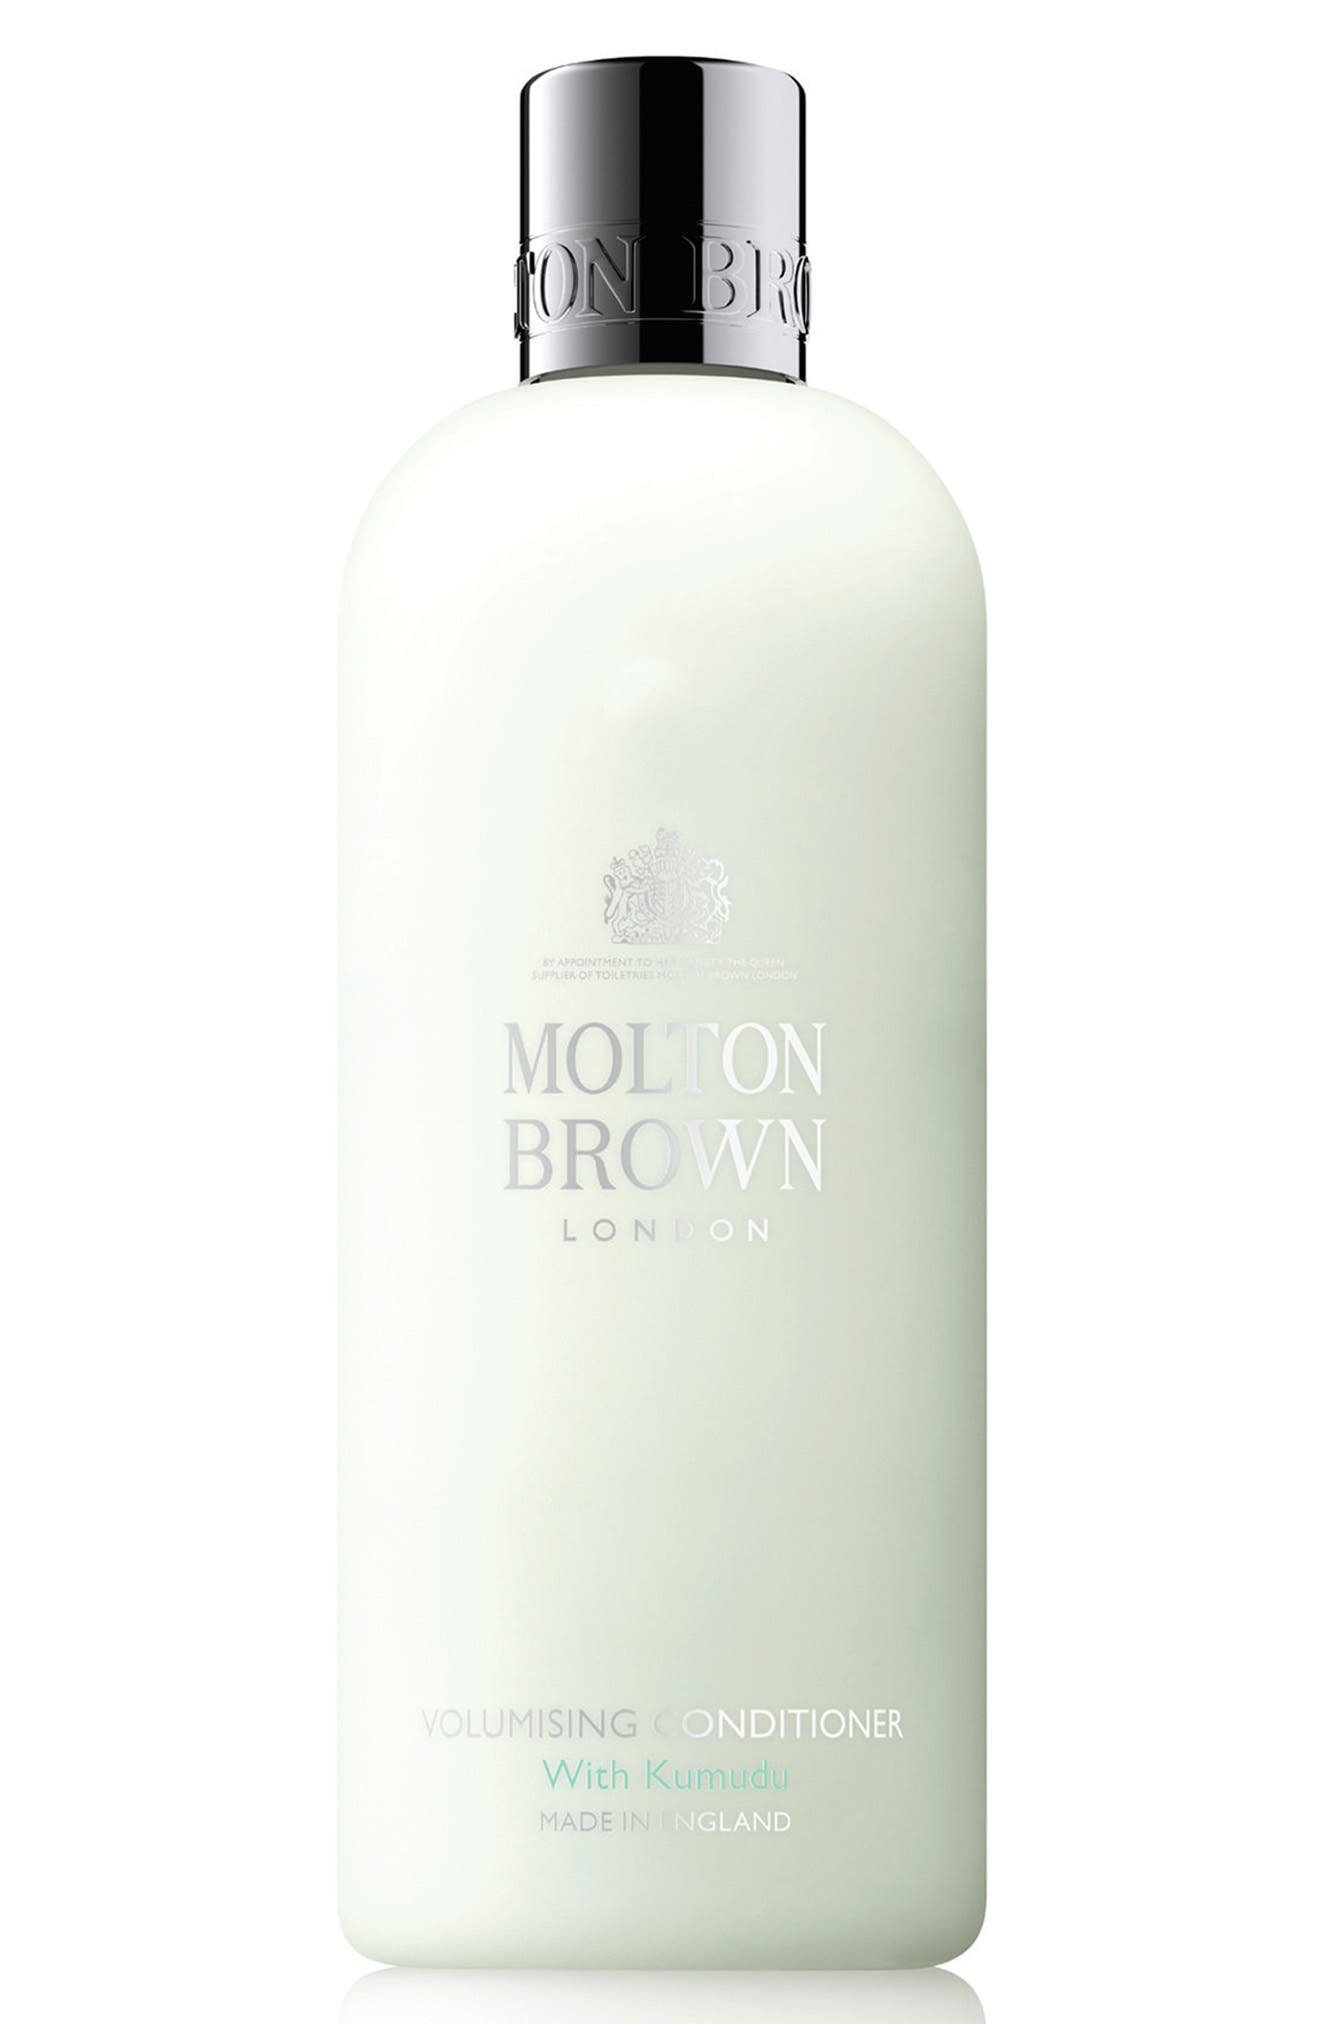 MOLTON BROWN London Volumizing Conditioner with Kumudu